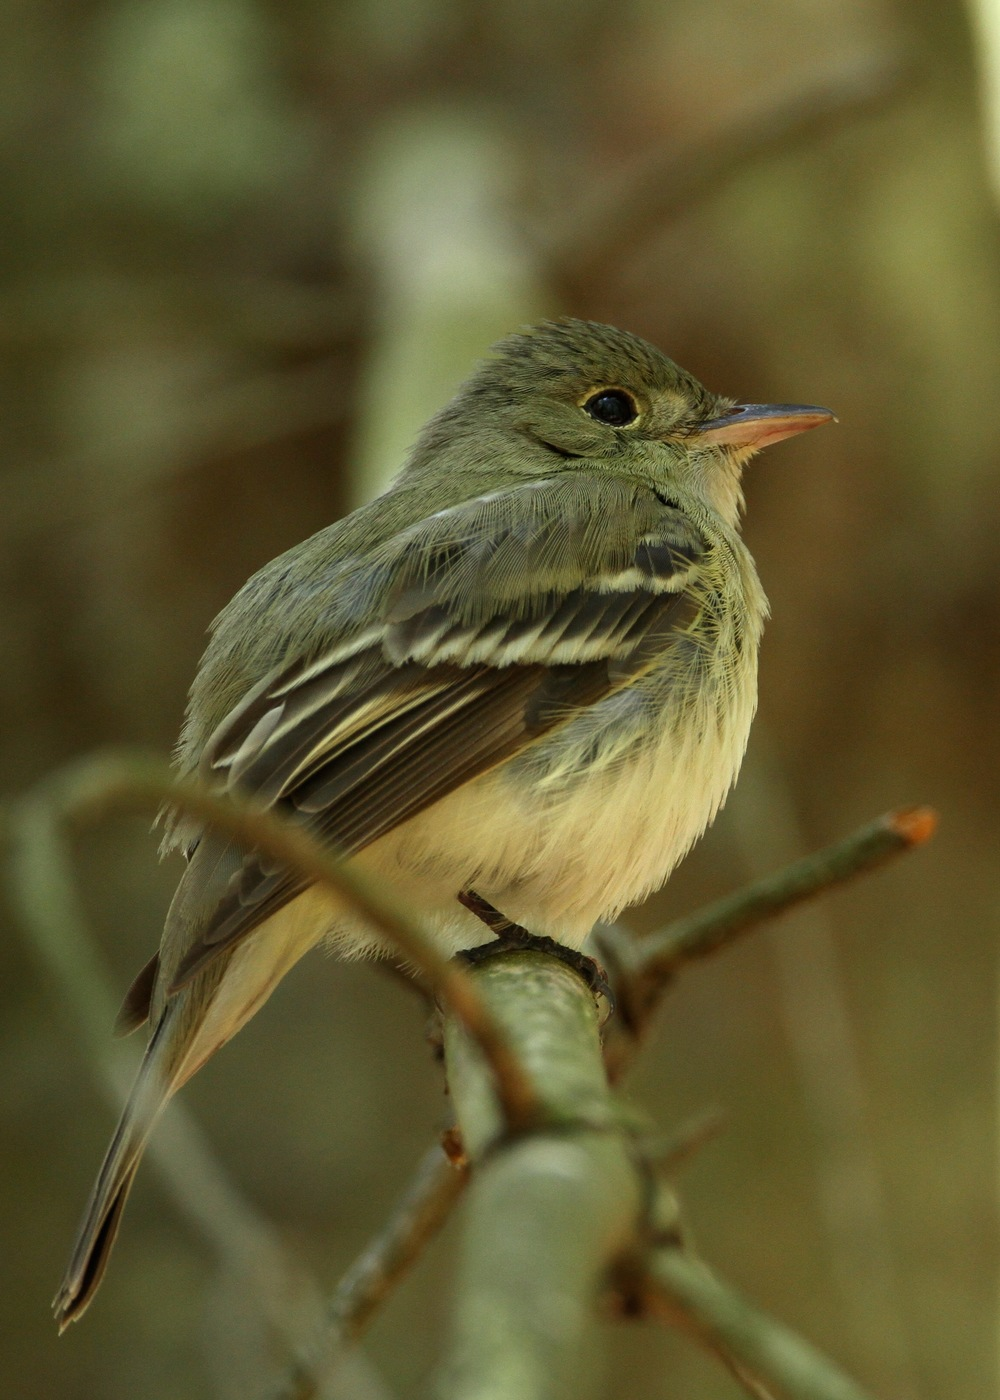 Acadian Flycatcher, Belleplain, New Jersey